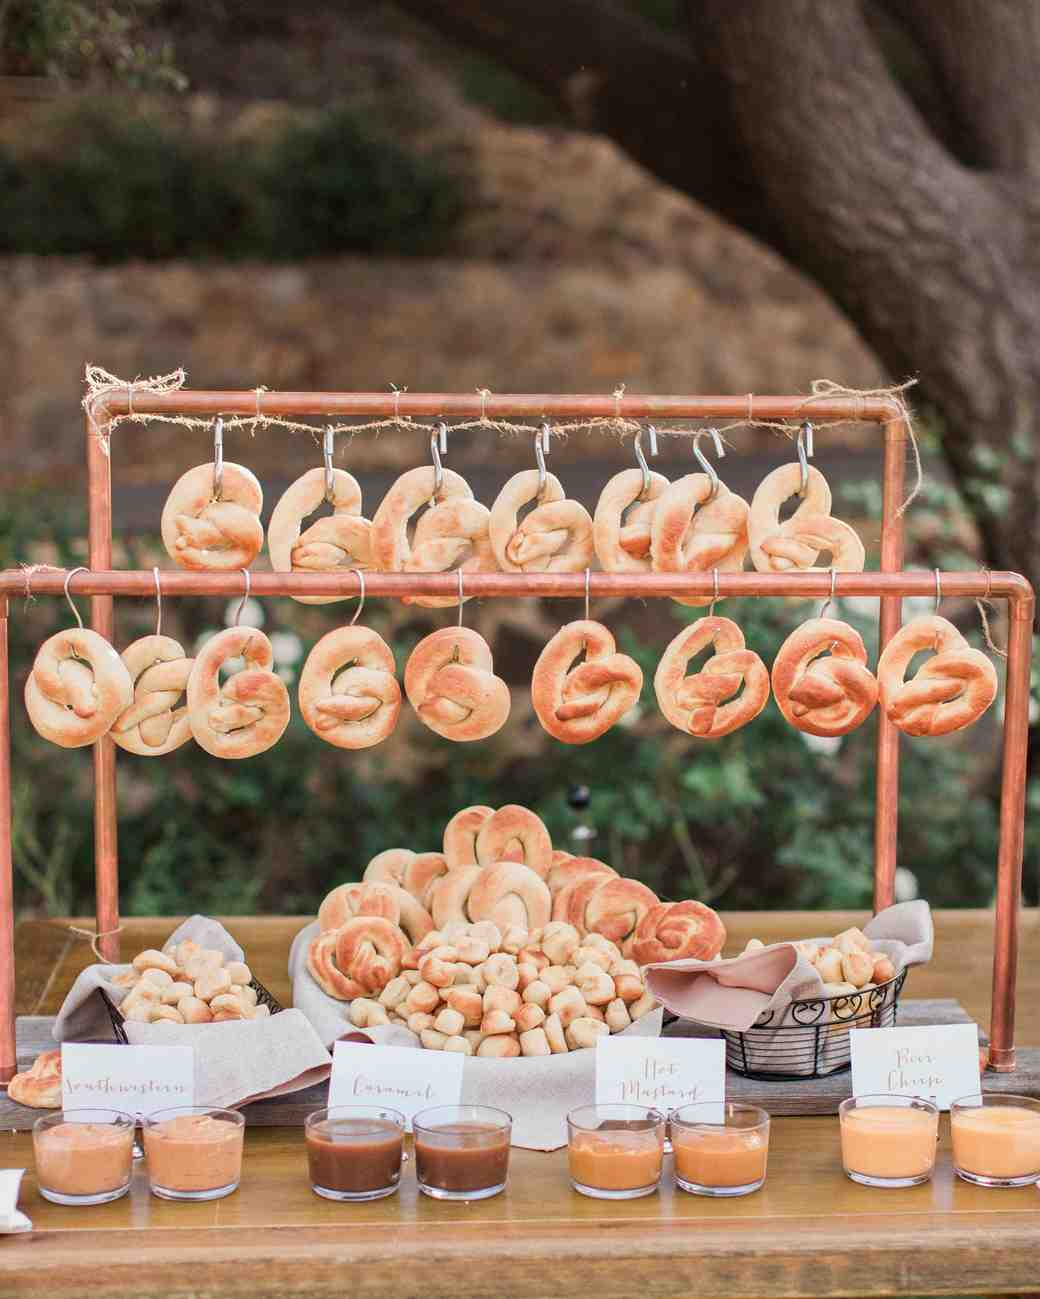 Cocktail Wedding Food Ideas: 25 Cocktail Hour Ideas From Real Weddings